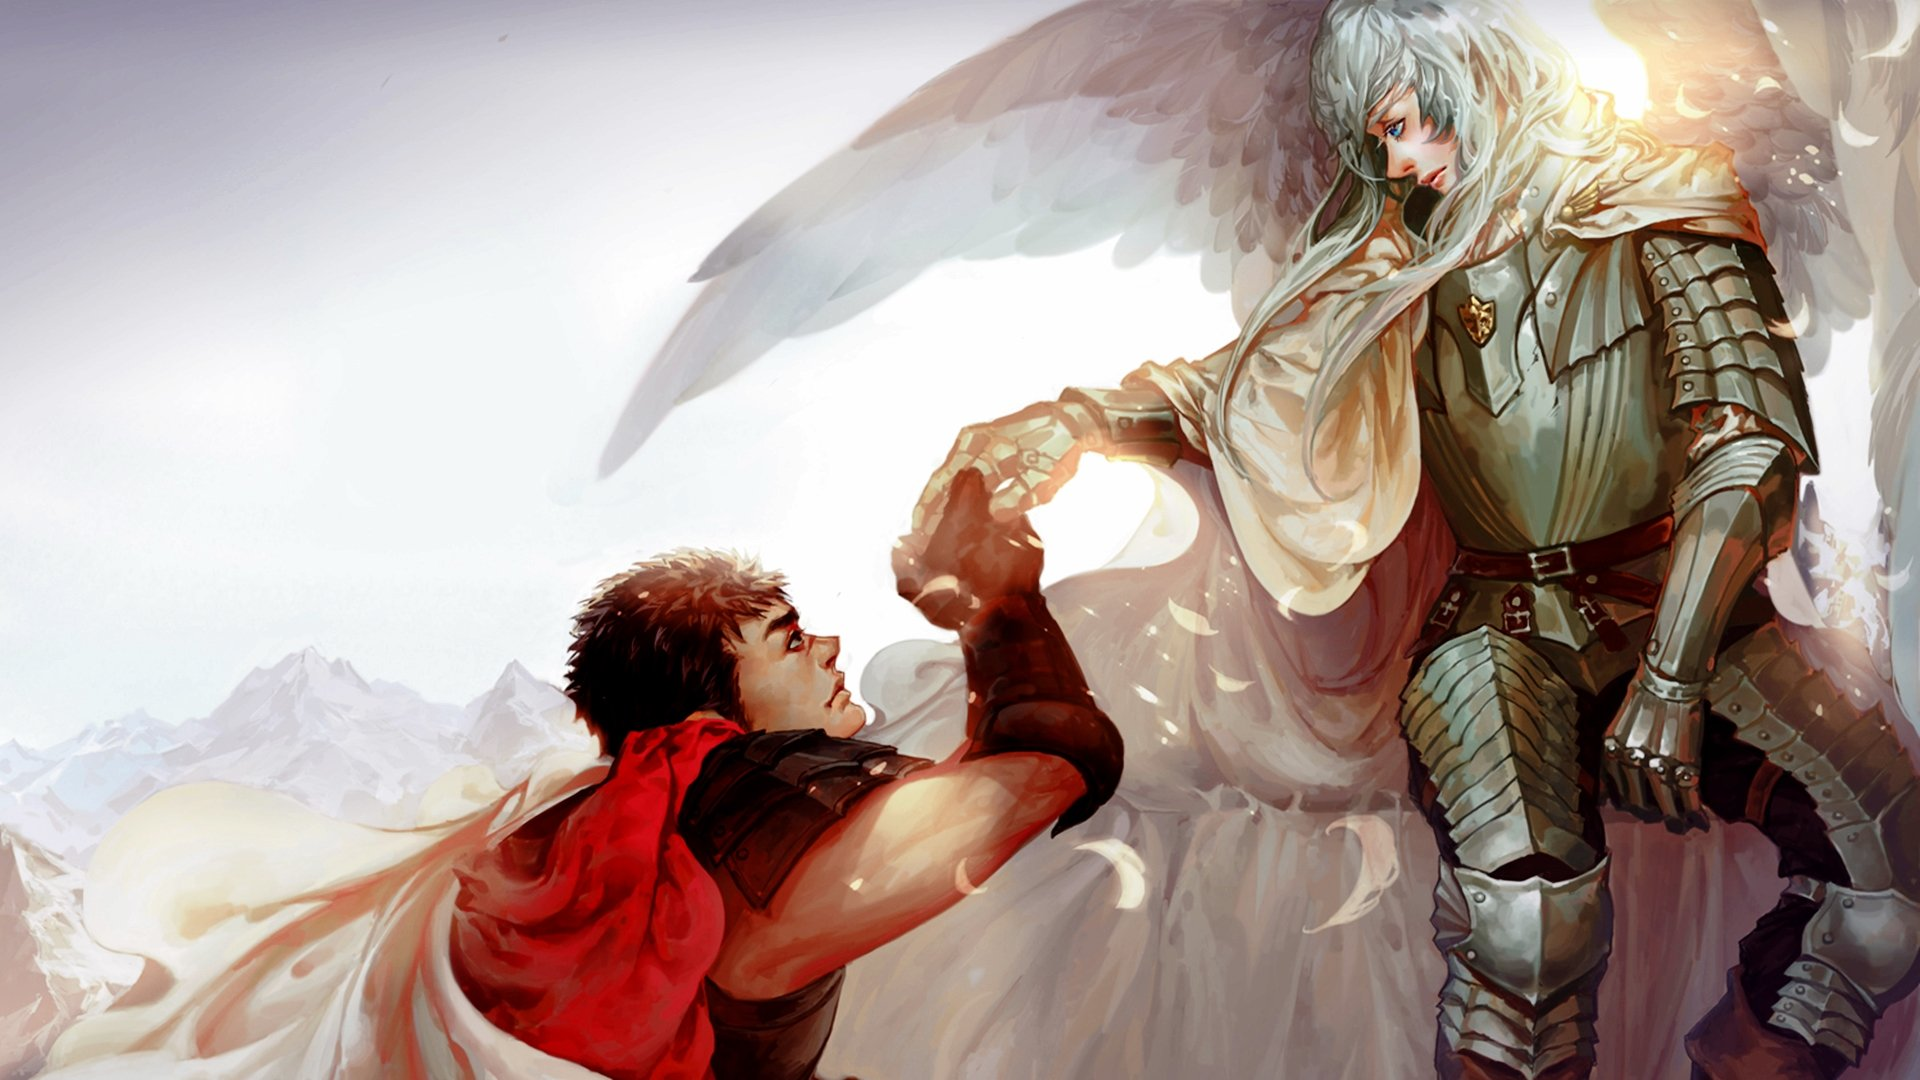 Berserk Guts and Griffith HD Wallpaper Background Image 1920x1080